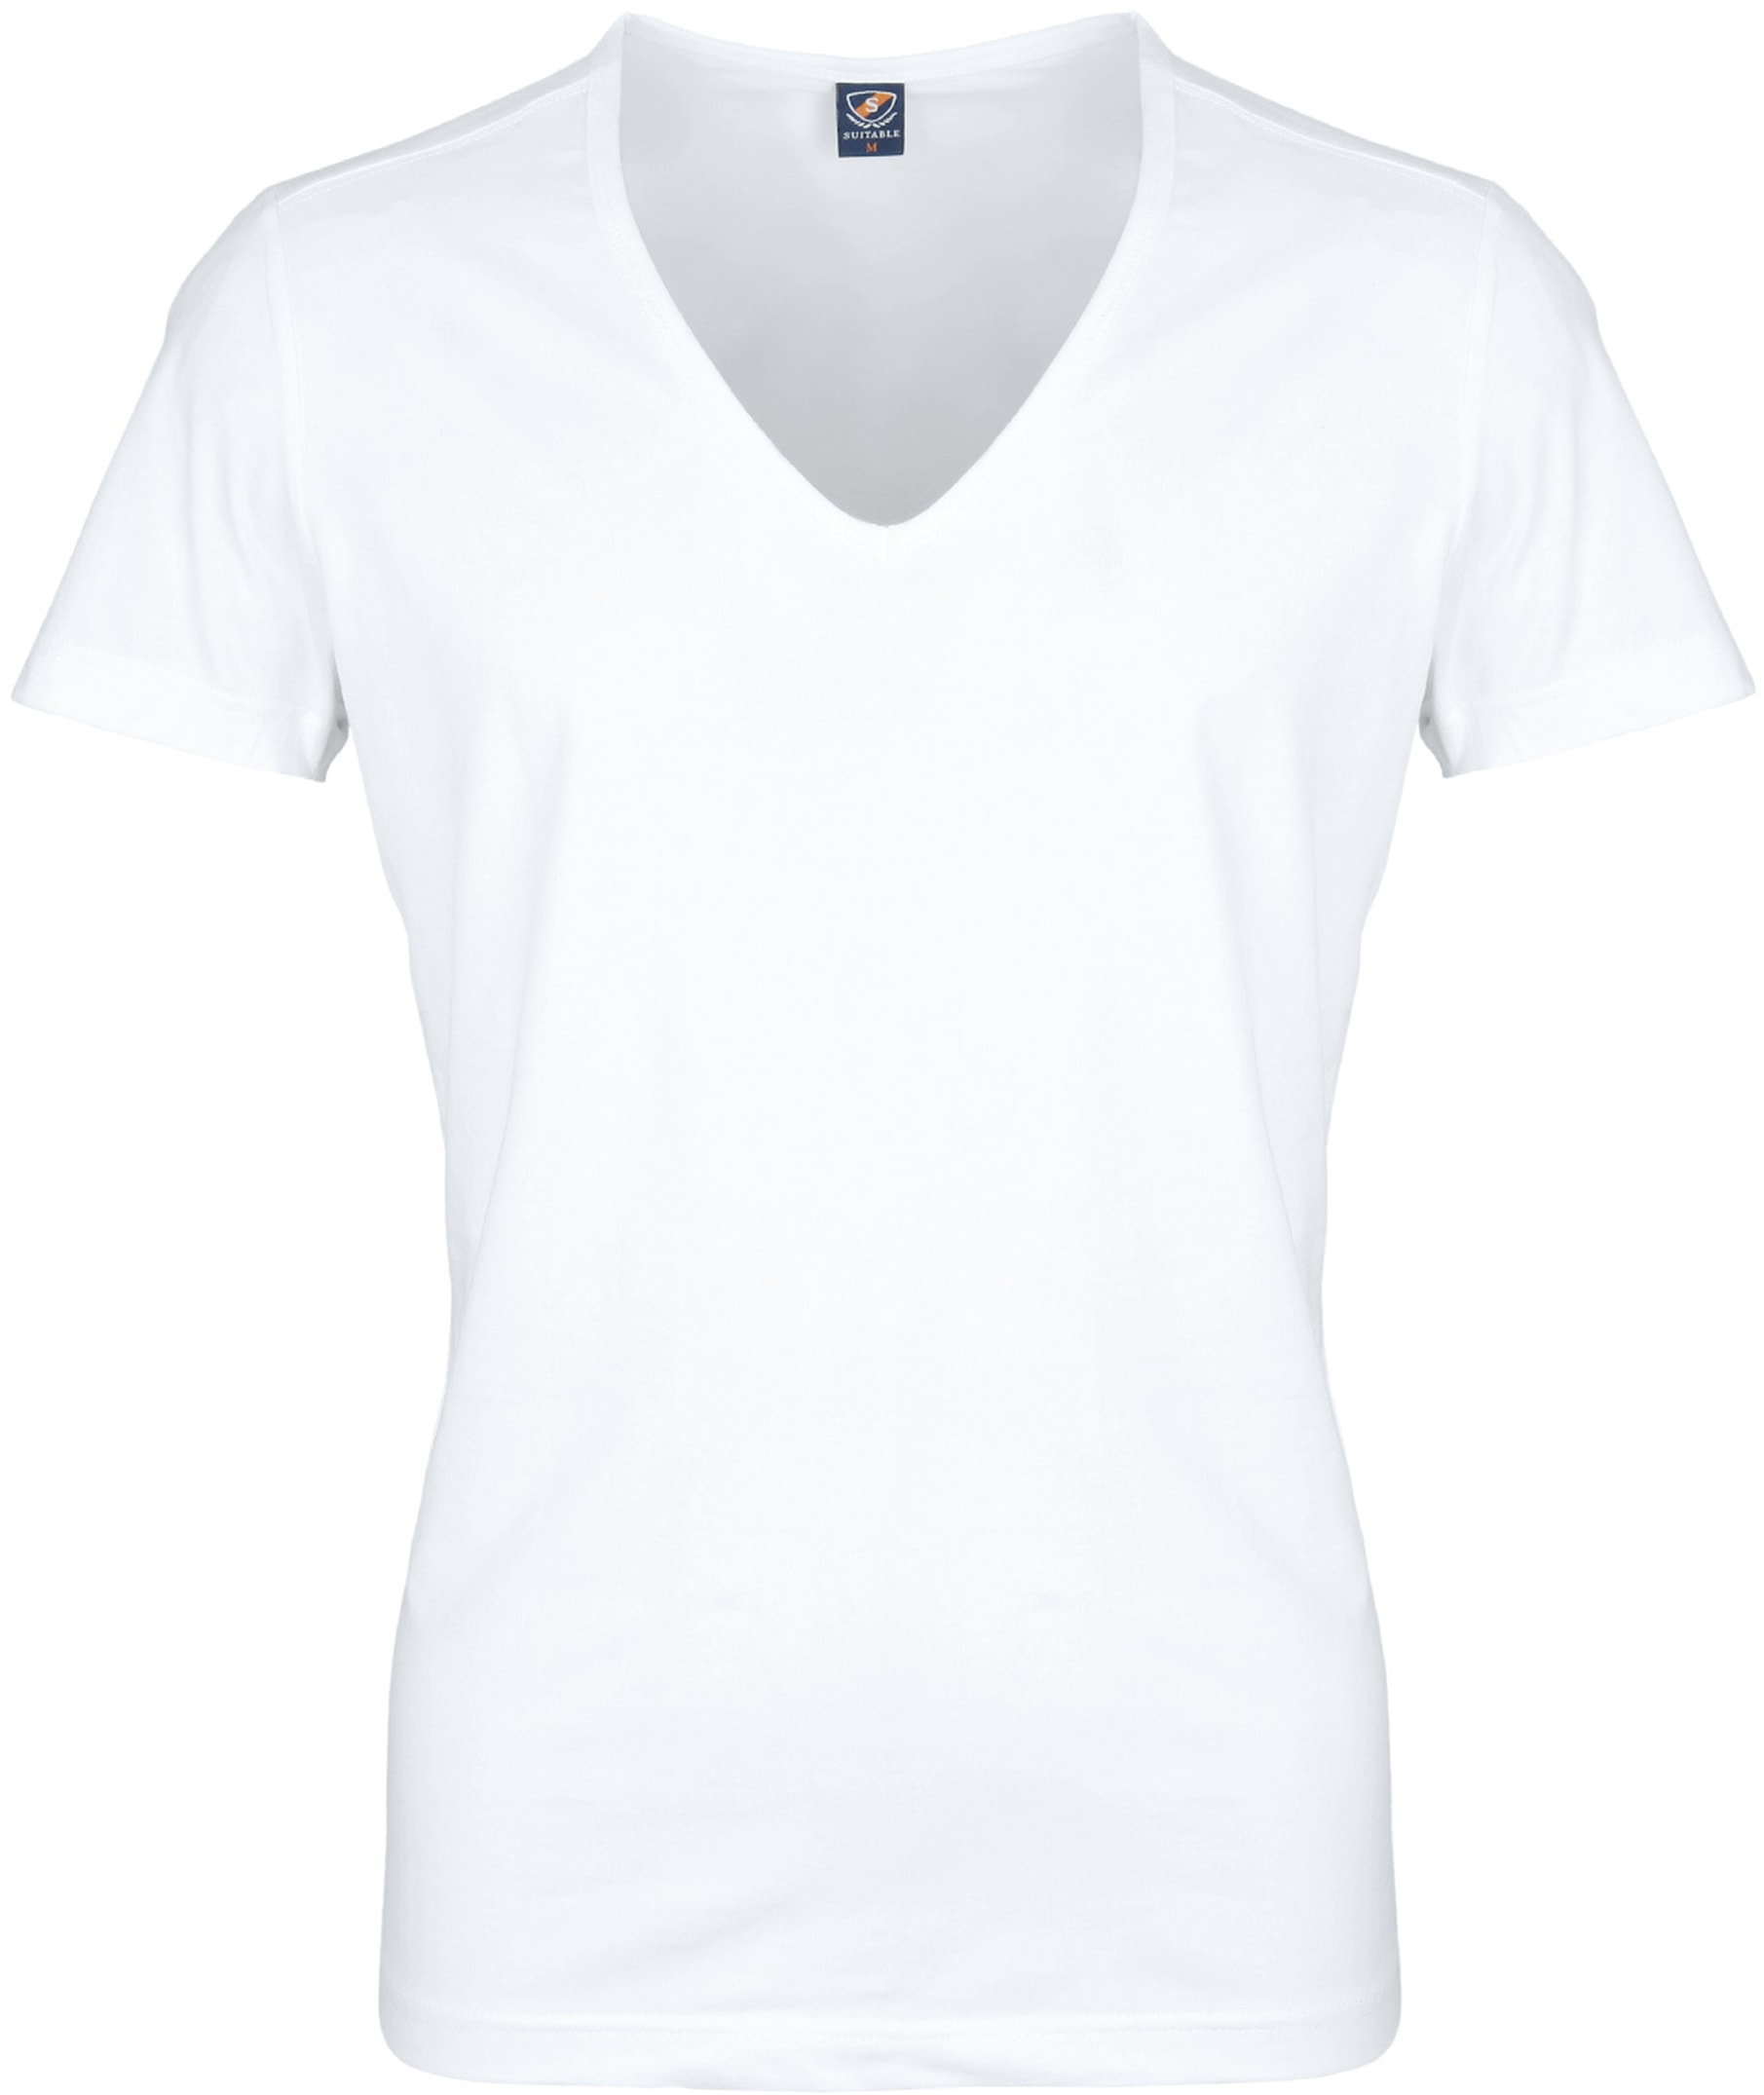 Deep V neck 4-Pack Stretch T-Shirt foto 1